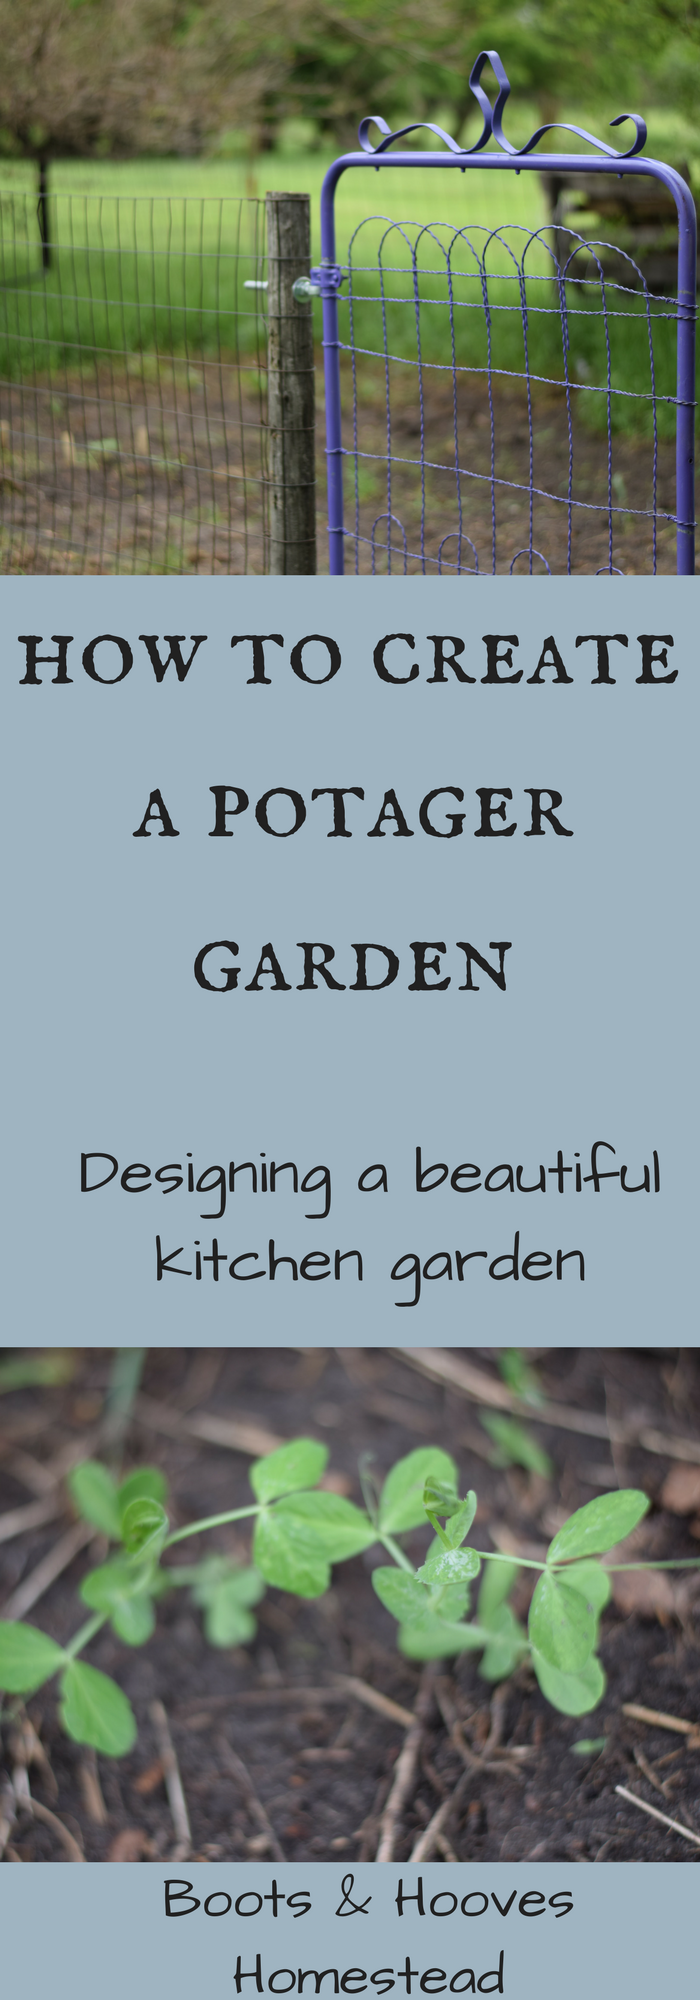 Beautiful vegetable and flower gardens - How To Create A Potager Garden